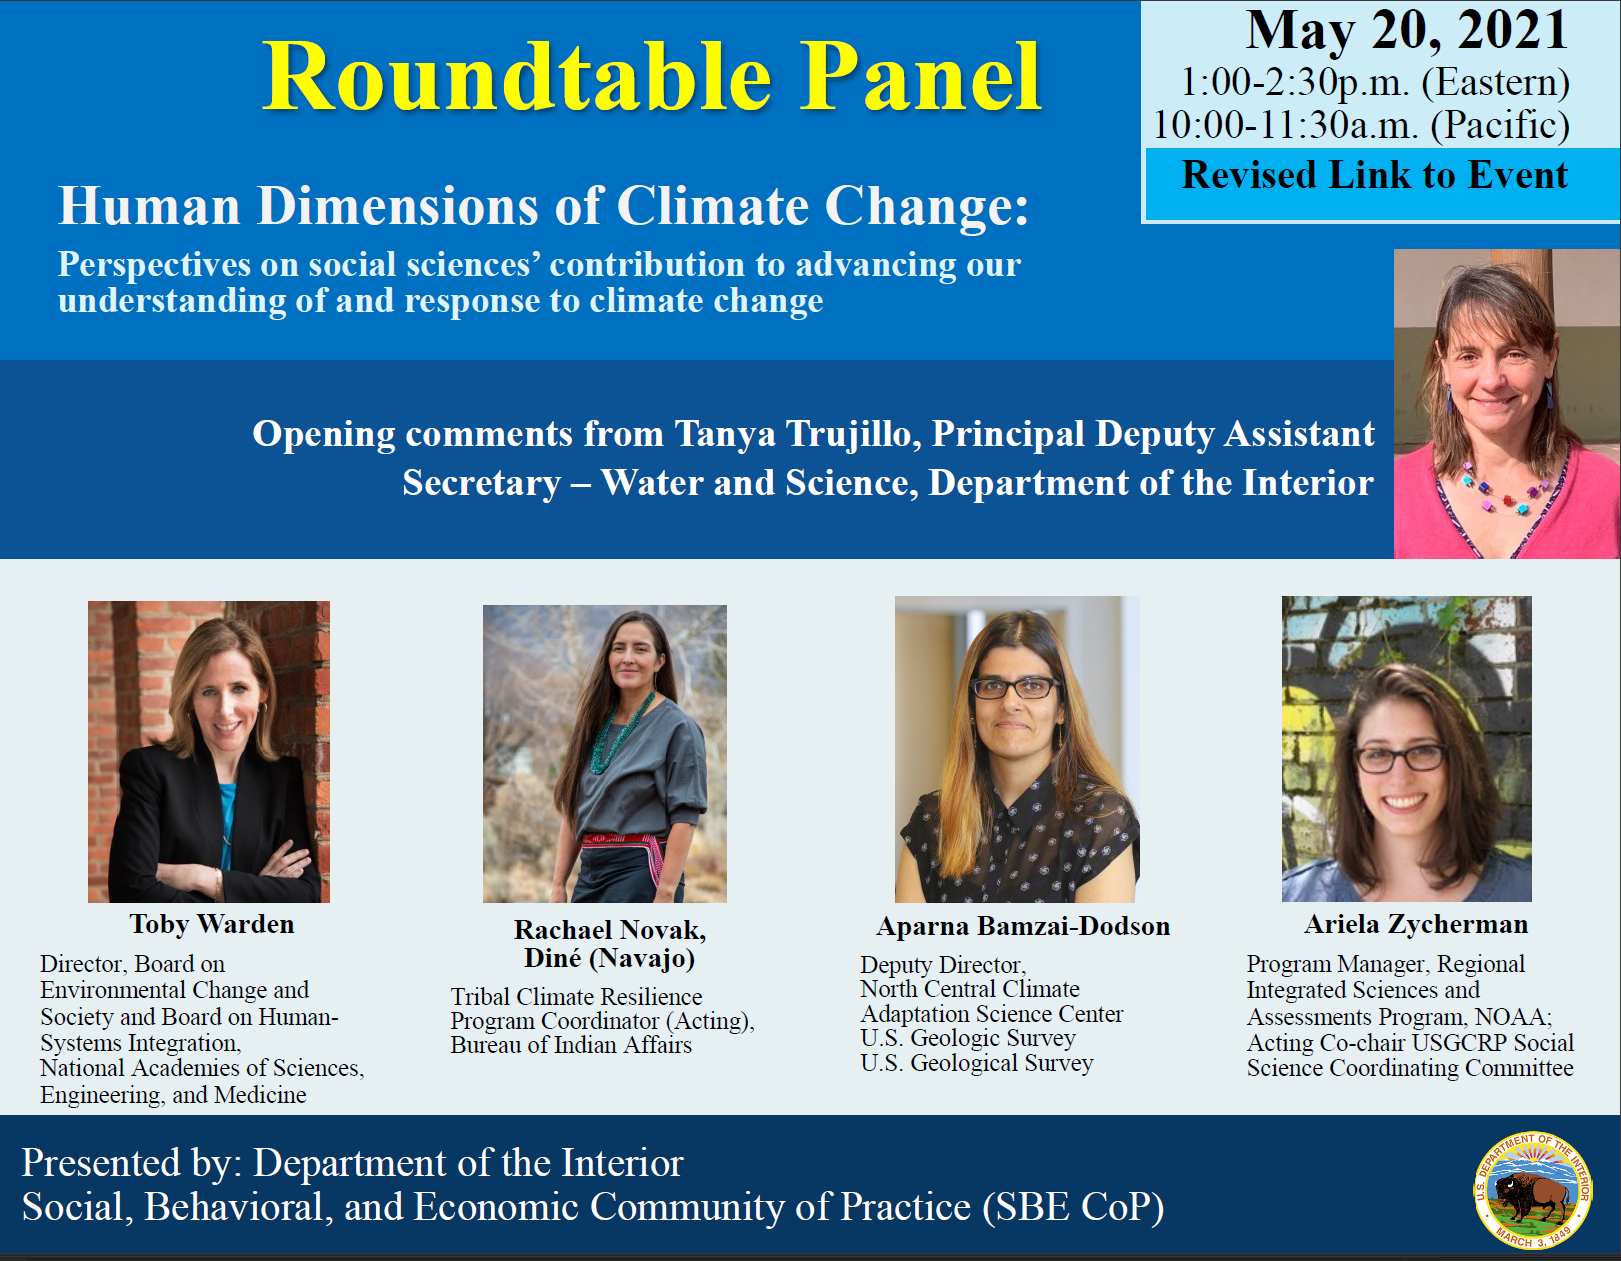 DOI SBE CoP Roundtable Flyer May 2021